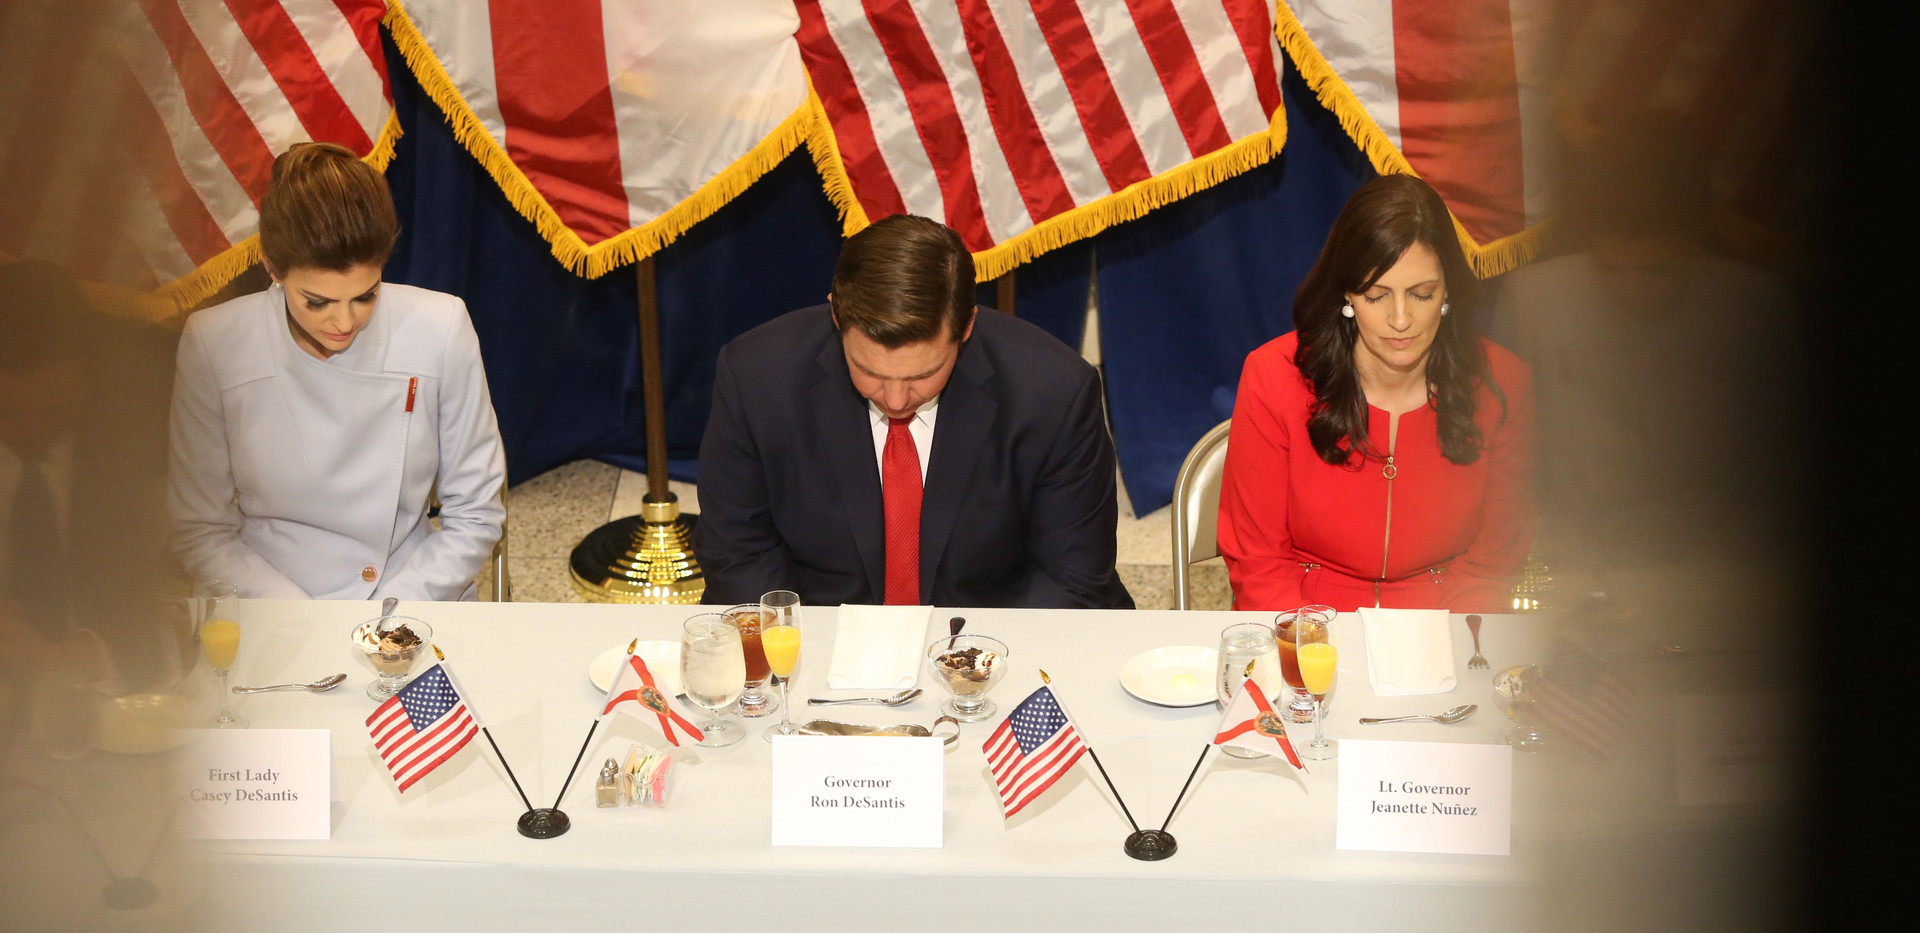 For the first time in Inaugural history, Gov. Ron DeSantis addresses Florida's Legislative leaders and Cabinet officials. DeSantis discusses his plans to work with our state's elected leaders to achieve a Bold Vision for a Brighter Future, Tuesday, Jan. 8, 2019. Gov. Ron DeSantis, left, and Lt. Gov. Jeanette Nunez, bow their head in prayer before the start of the luncheon.